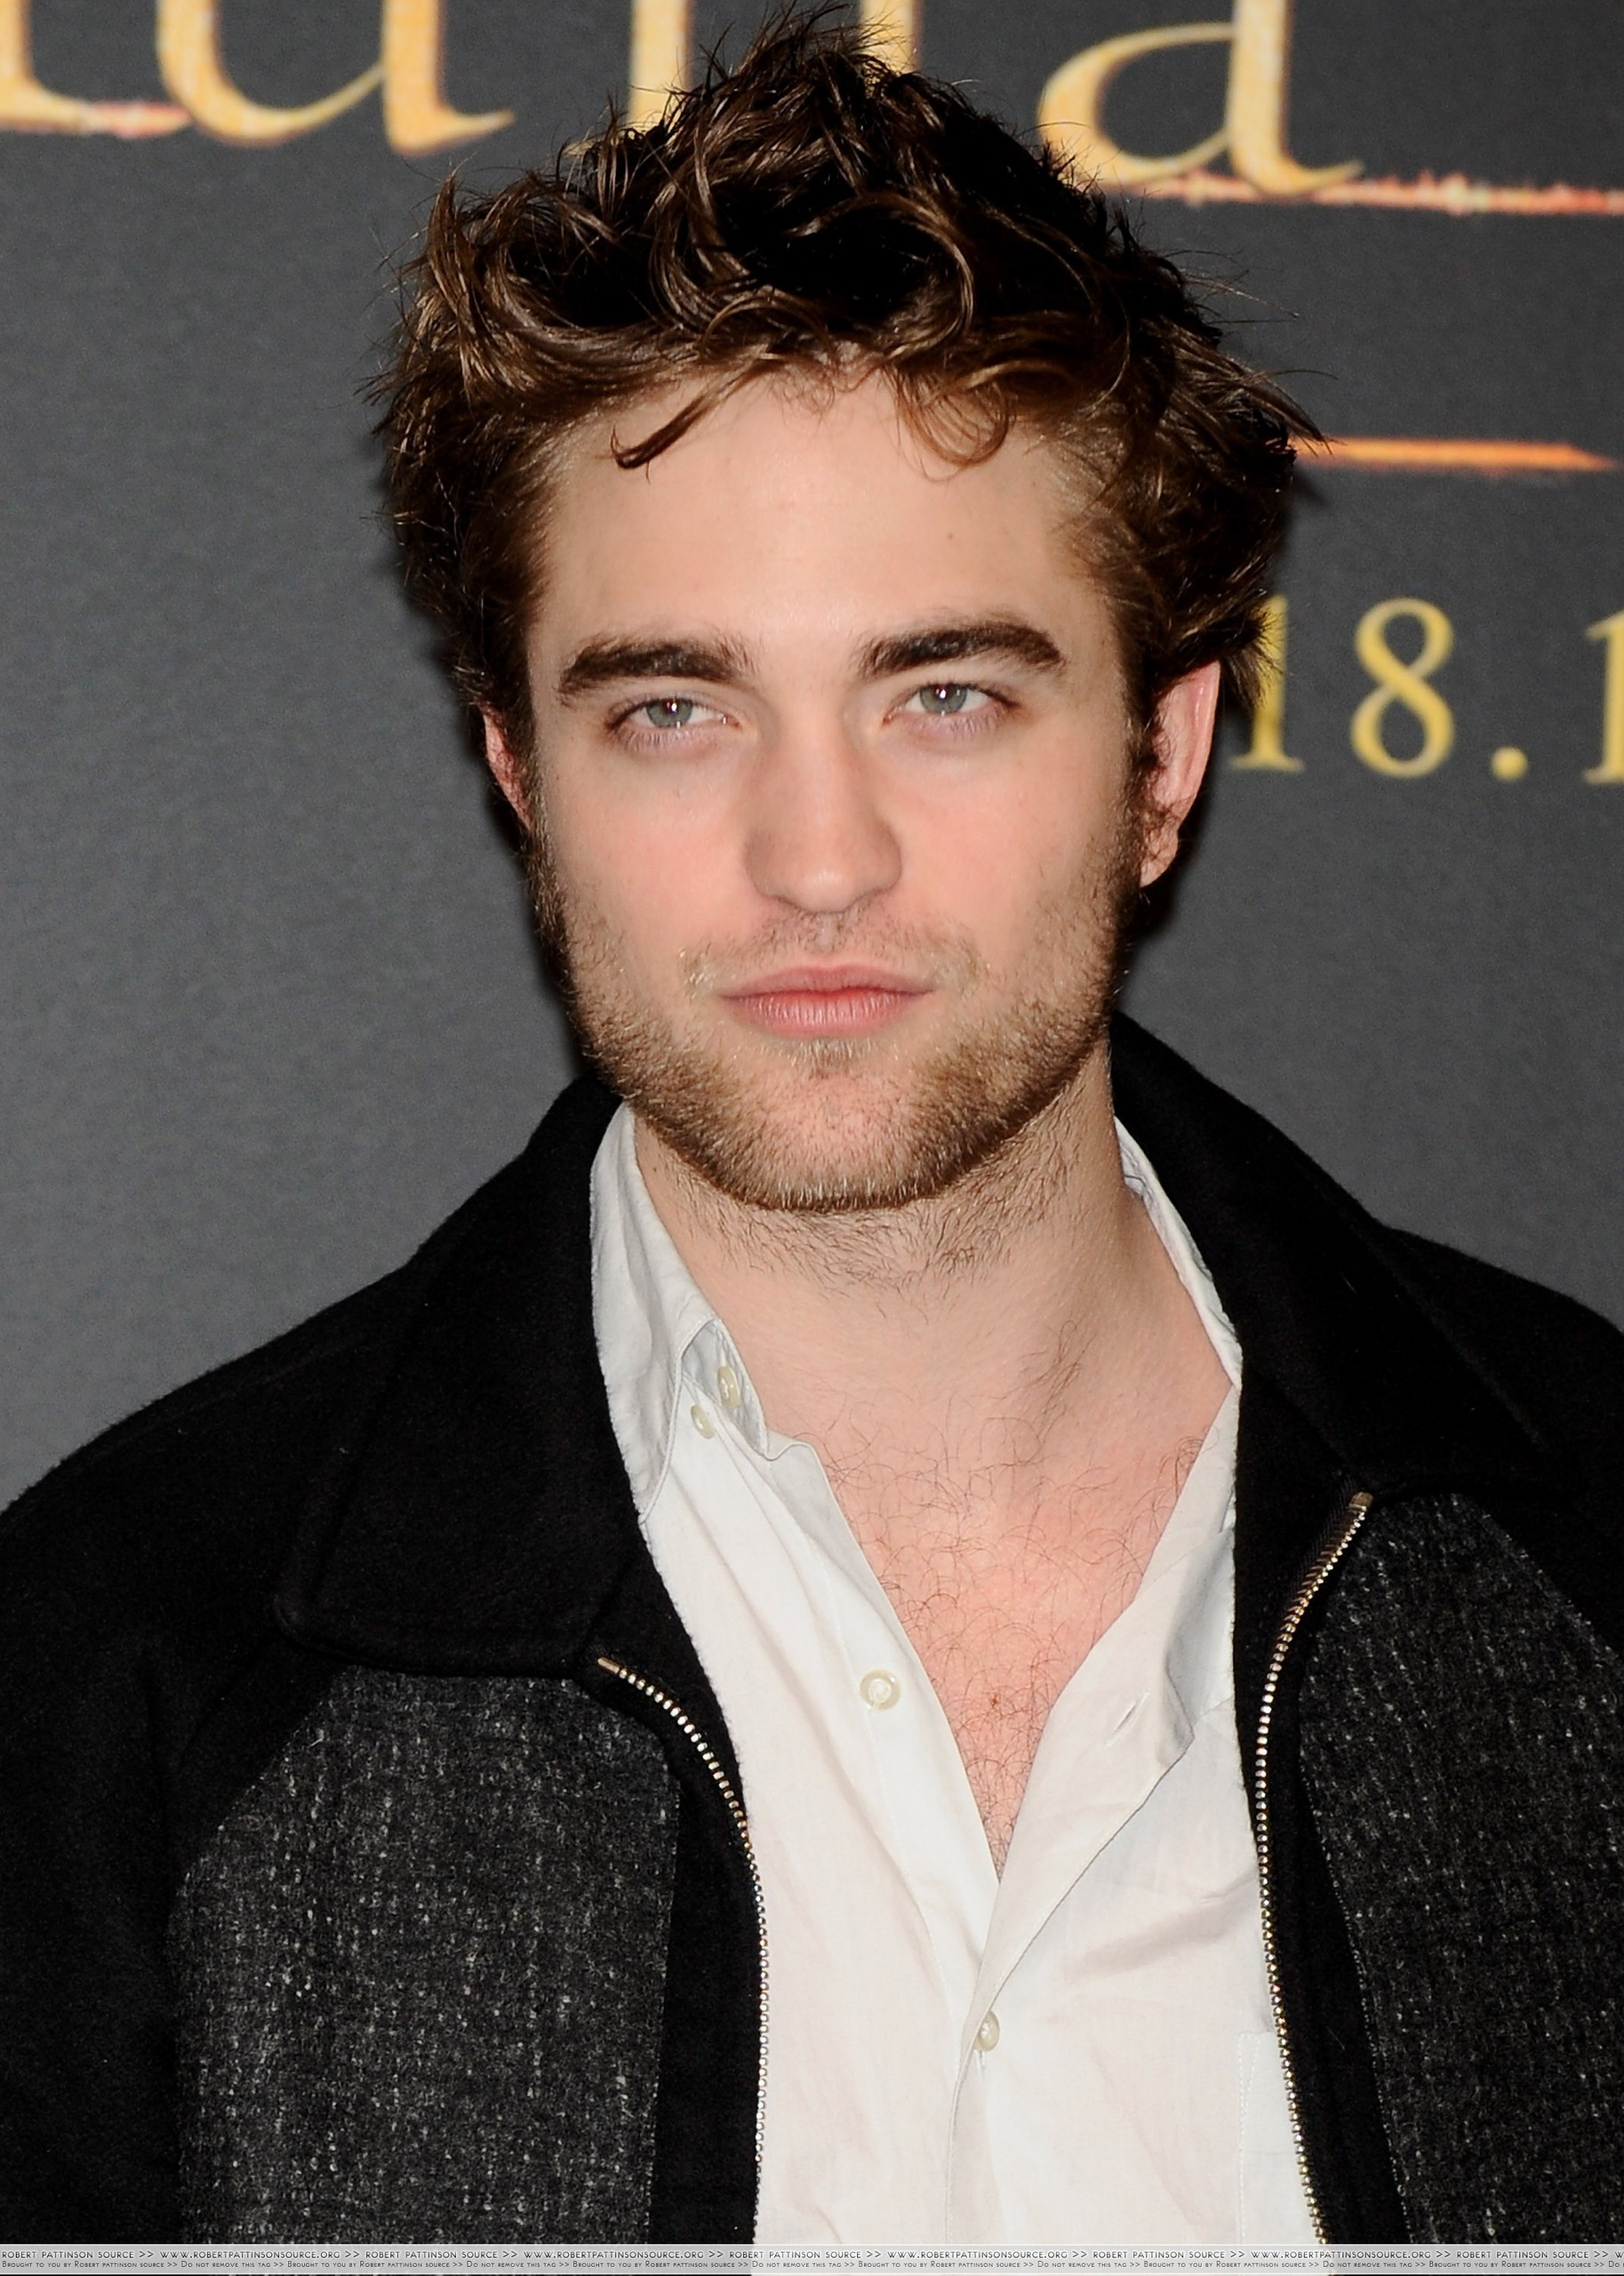 http://images2.fanpop.com/image/photos/9000000/First-pics-from-the-Madrid-Press-Conference-twilight-series-9024002-1827-2560.jpg